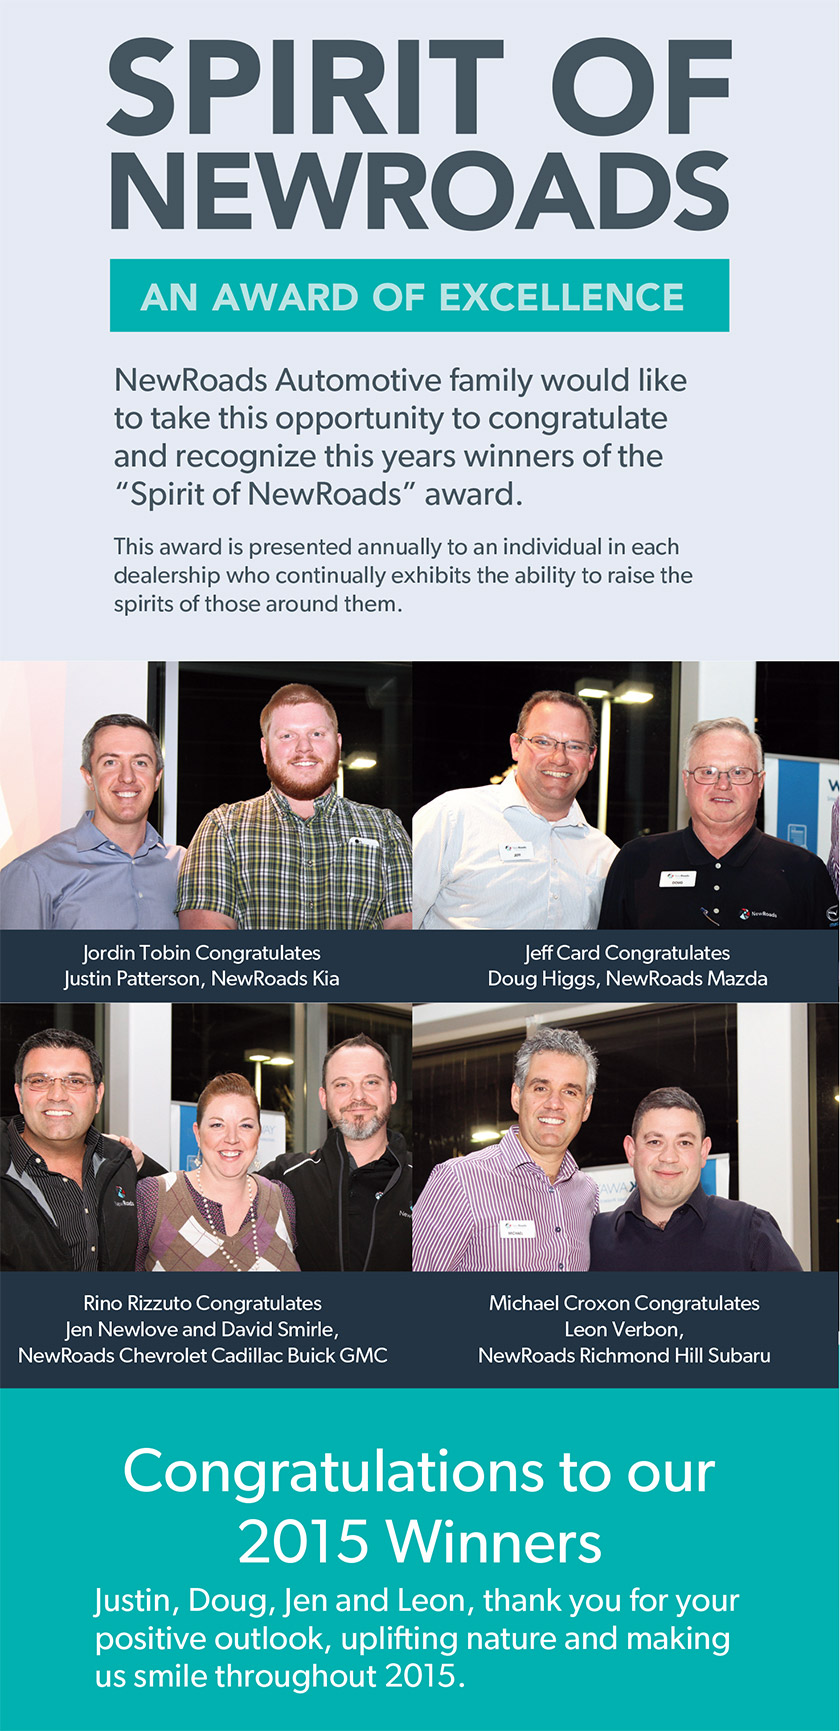 Spirit of NewRoads Awards - Find New Roads